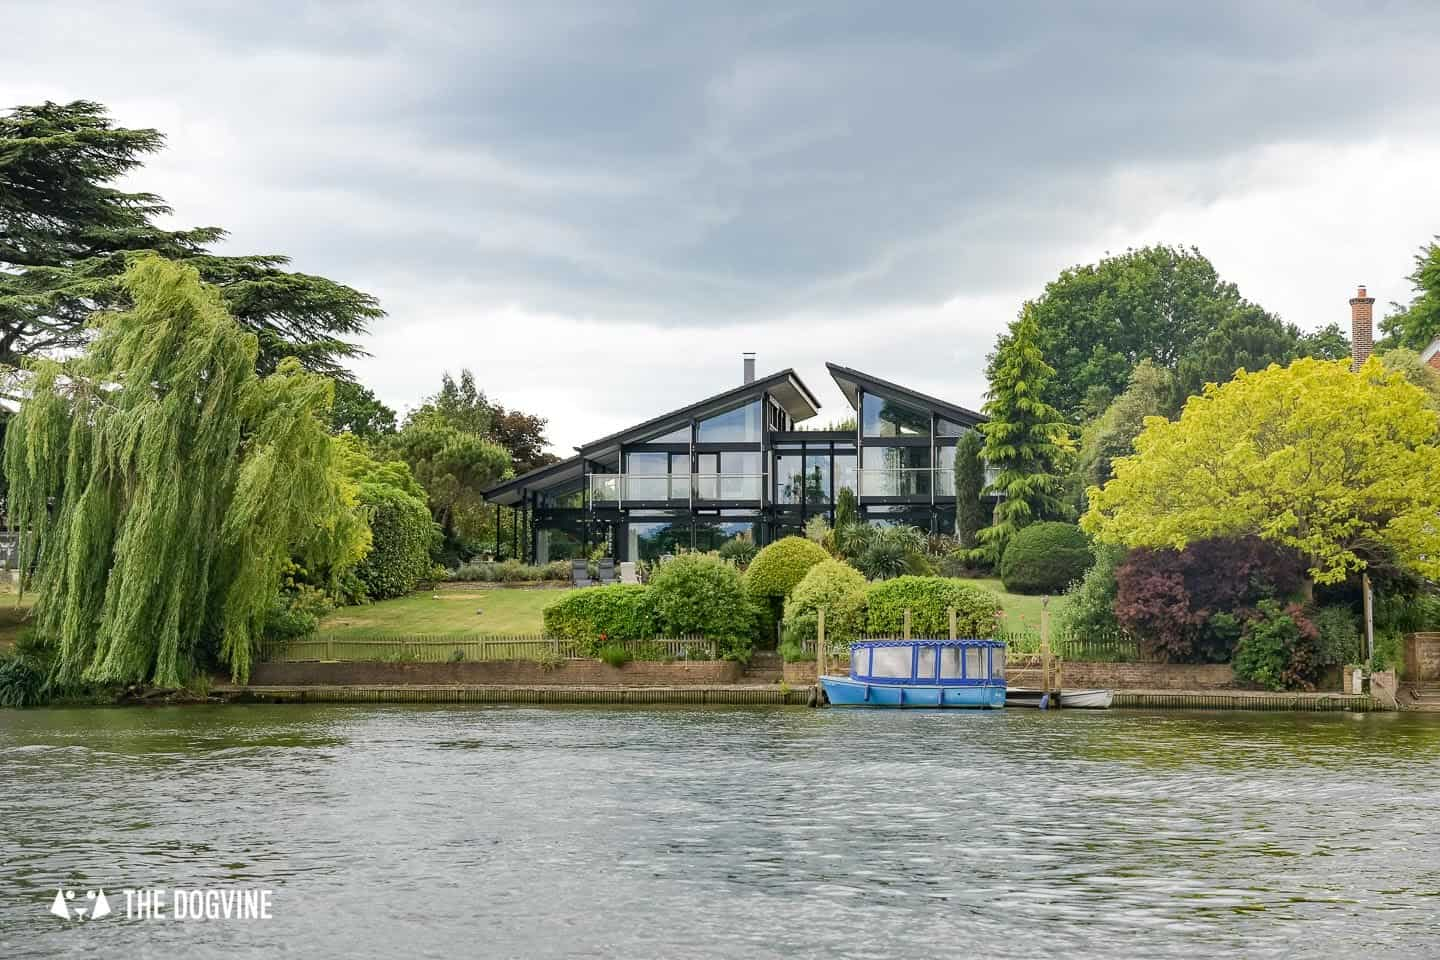 Dog-friendly Go Boat Kingston Upon Thames 4